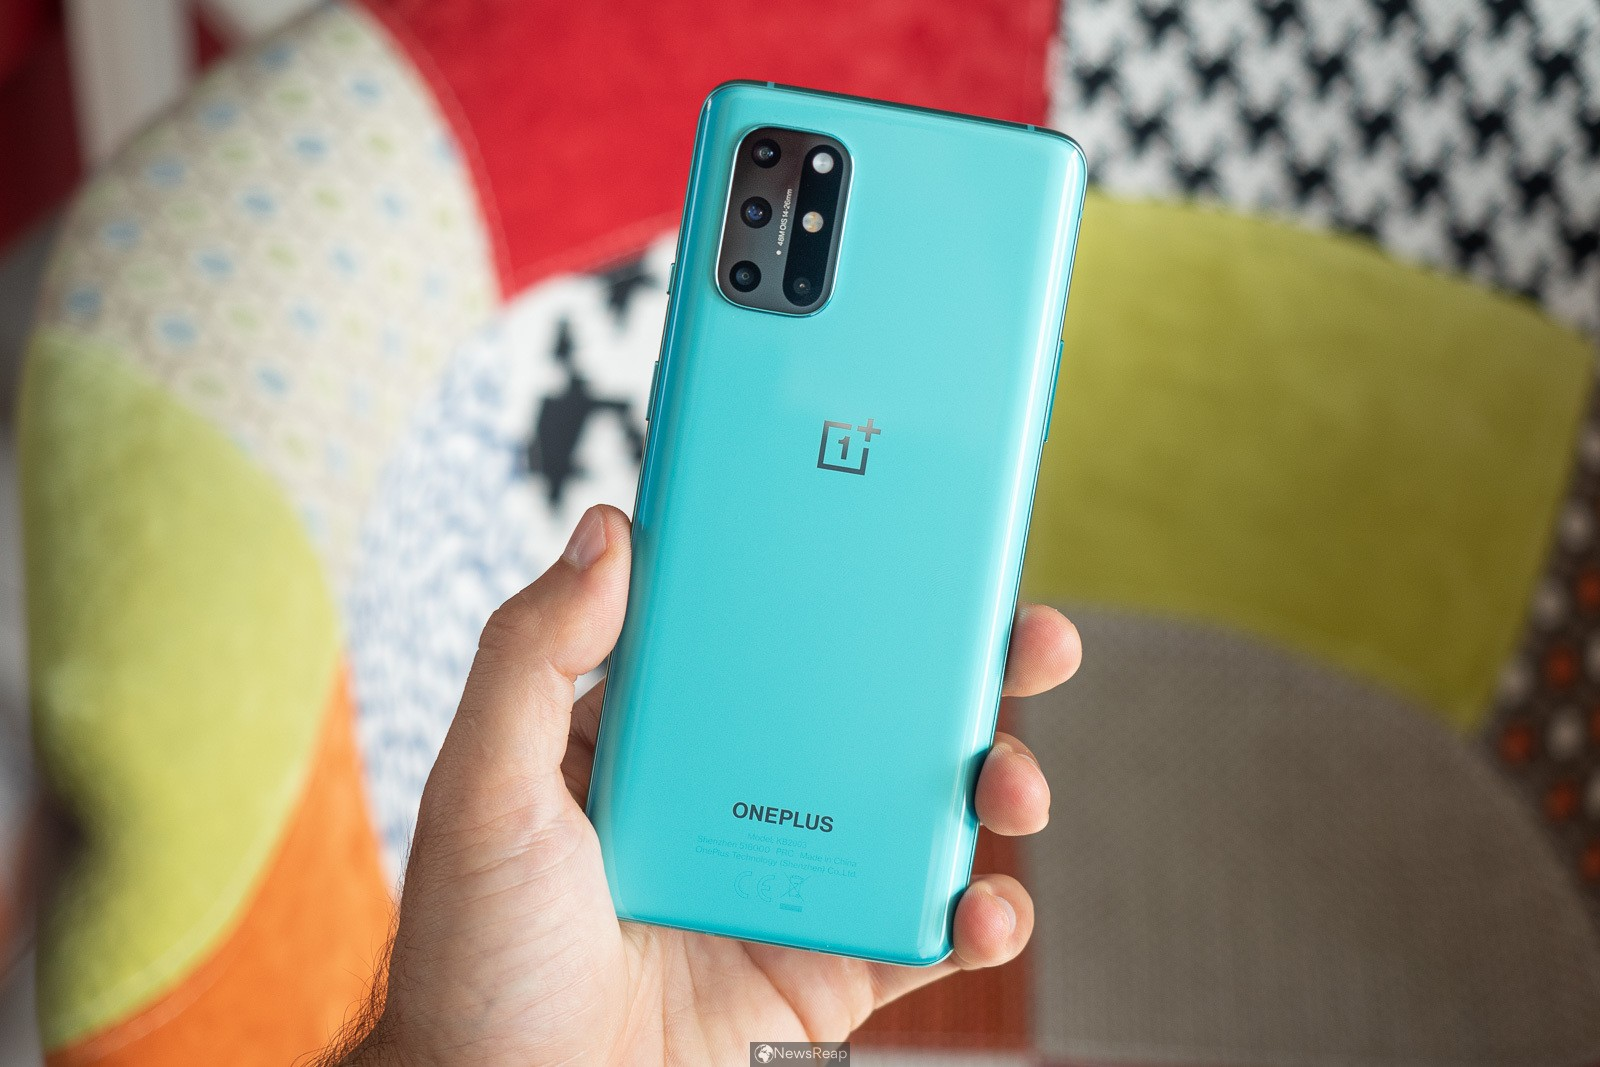 Oneplus is going to release the Oneplus 9 in March 2021